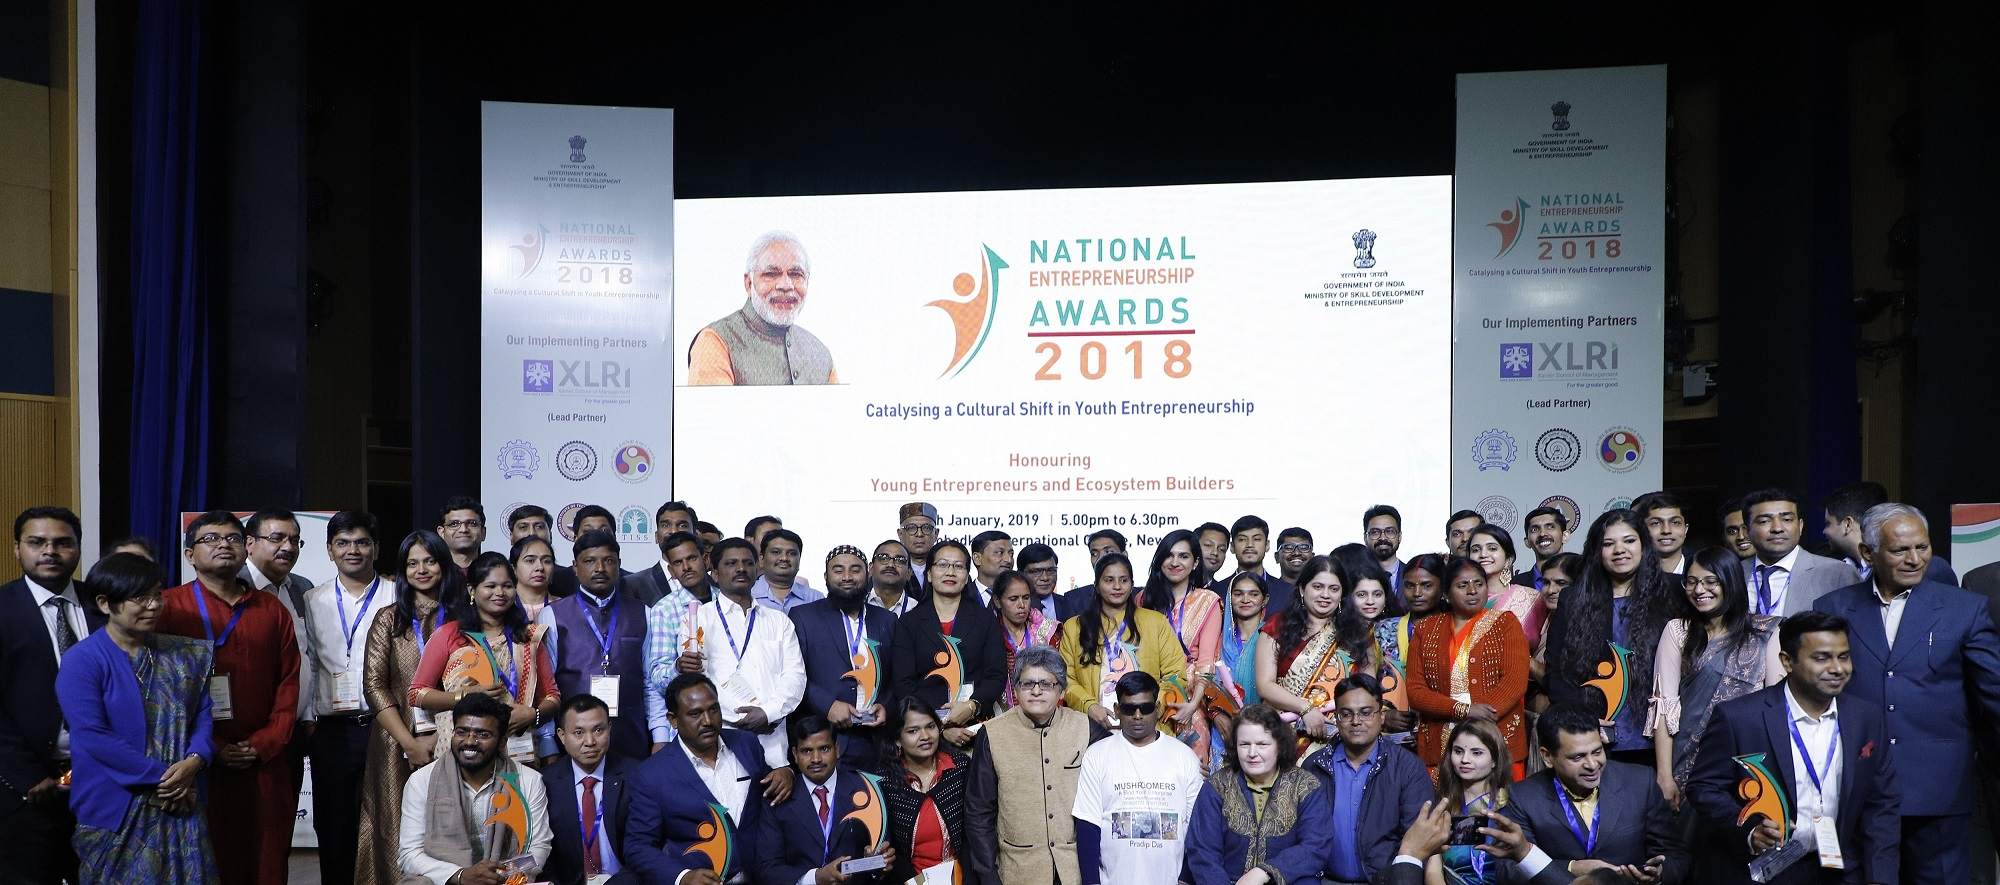 National Entrepreneurship Awards 2018 winners